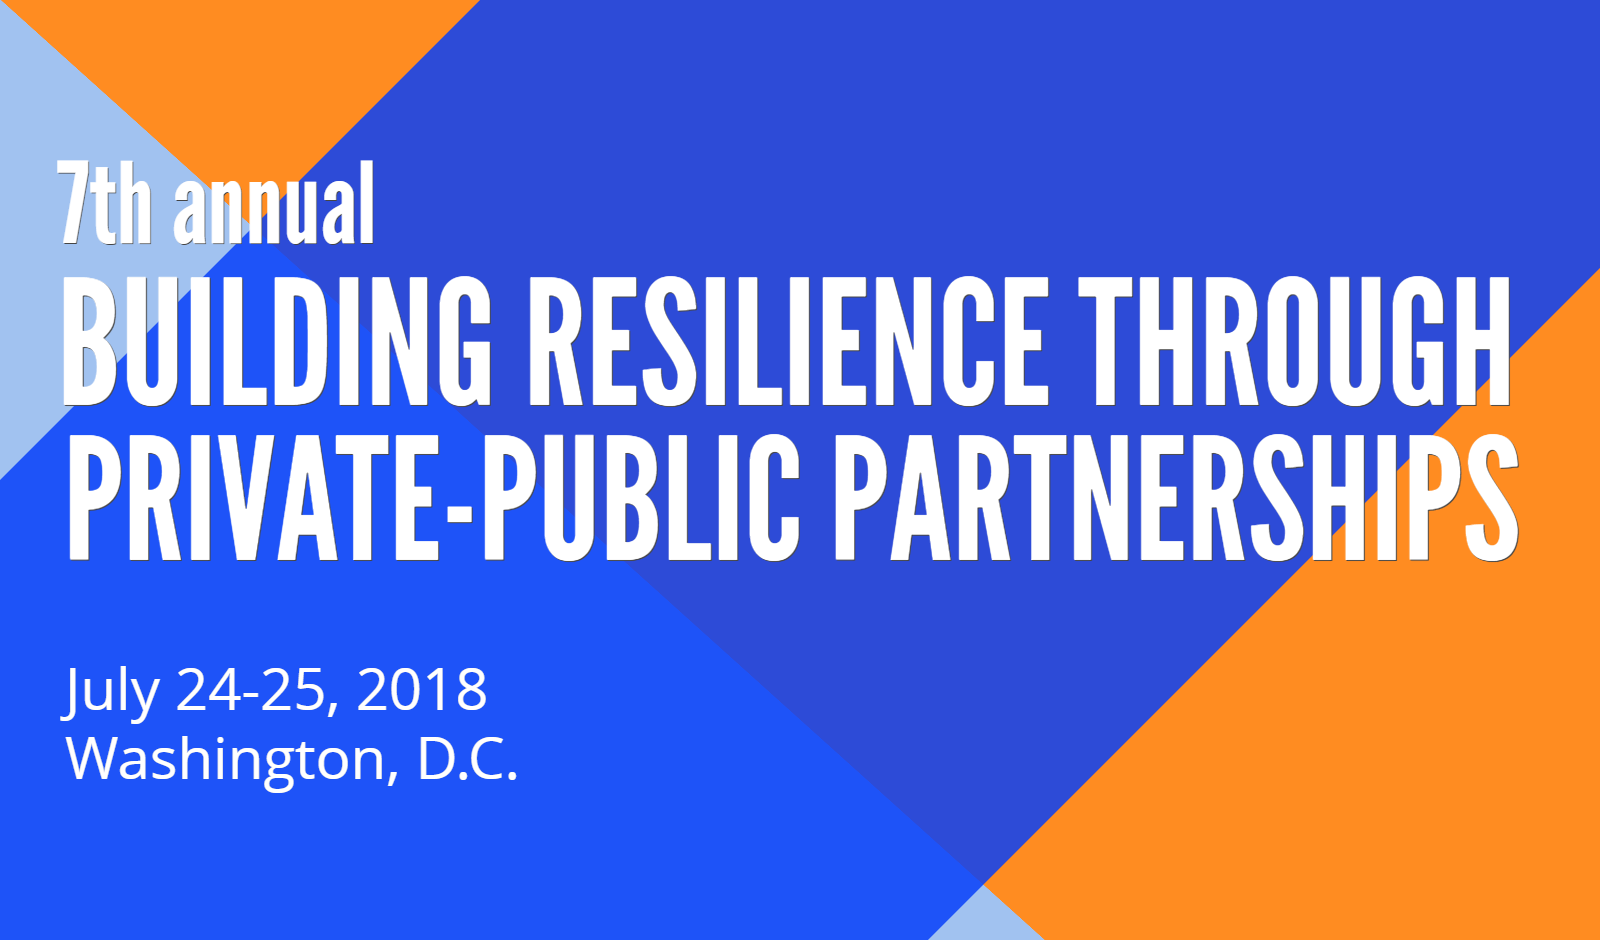 7th Annual Building Resilience through Private-Public Partnerships Conference